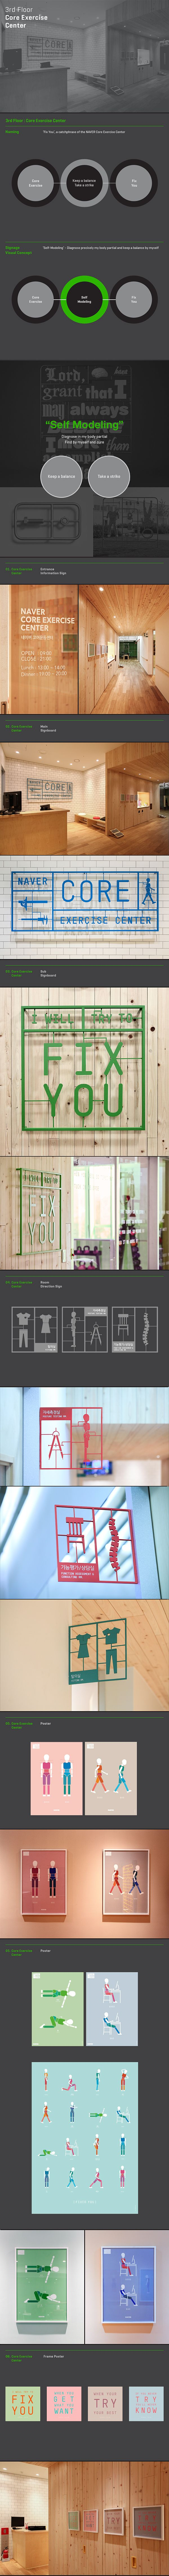 NAVER GREEN FACTORY 2.0 SIGNAGE SYSTEM DESIGN PROJECT by Plus X, via Behance